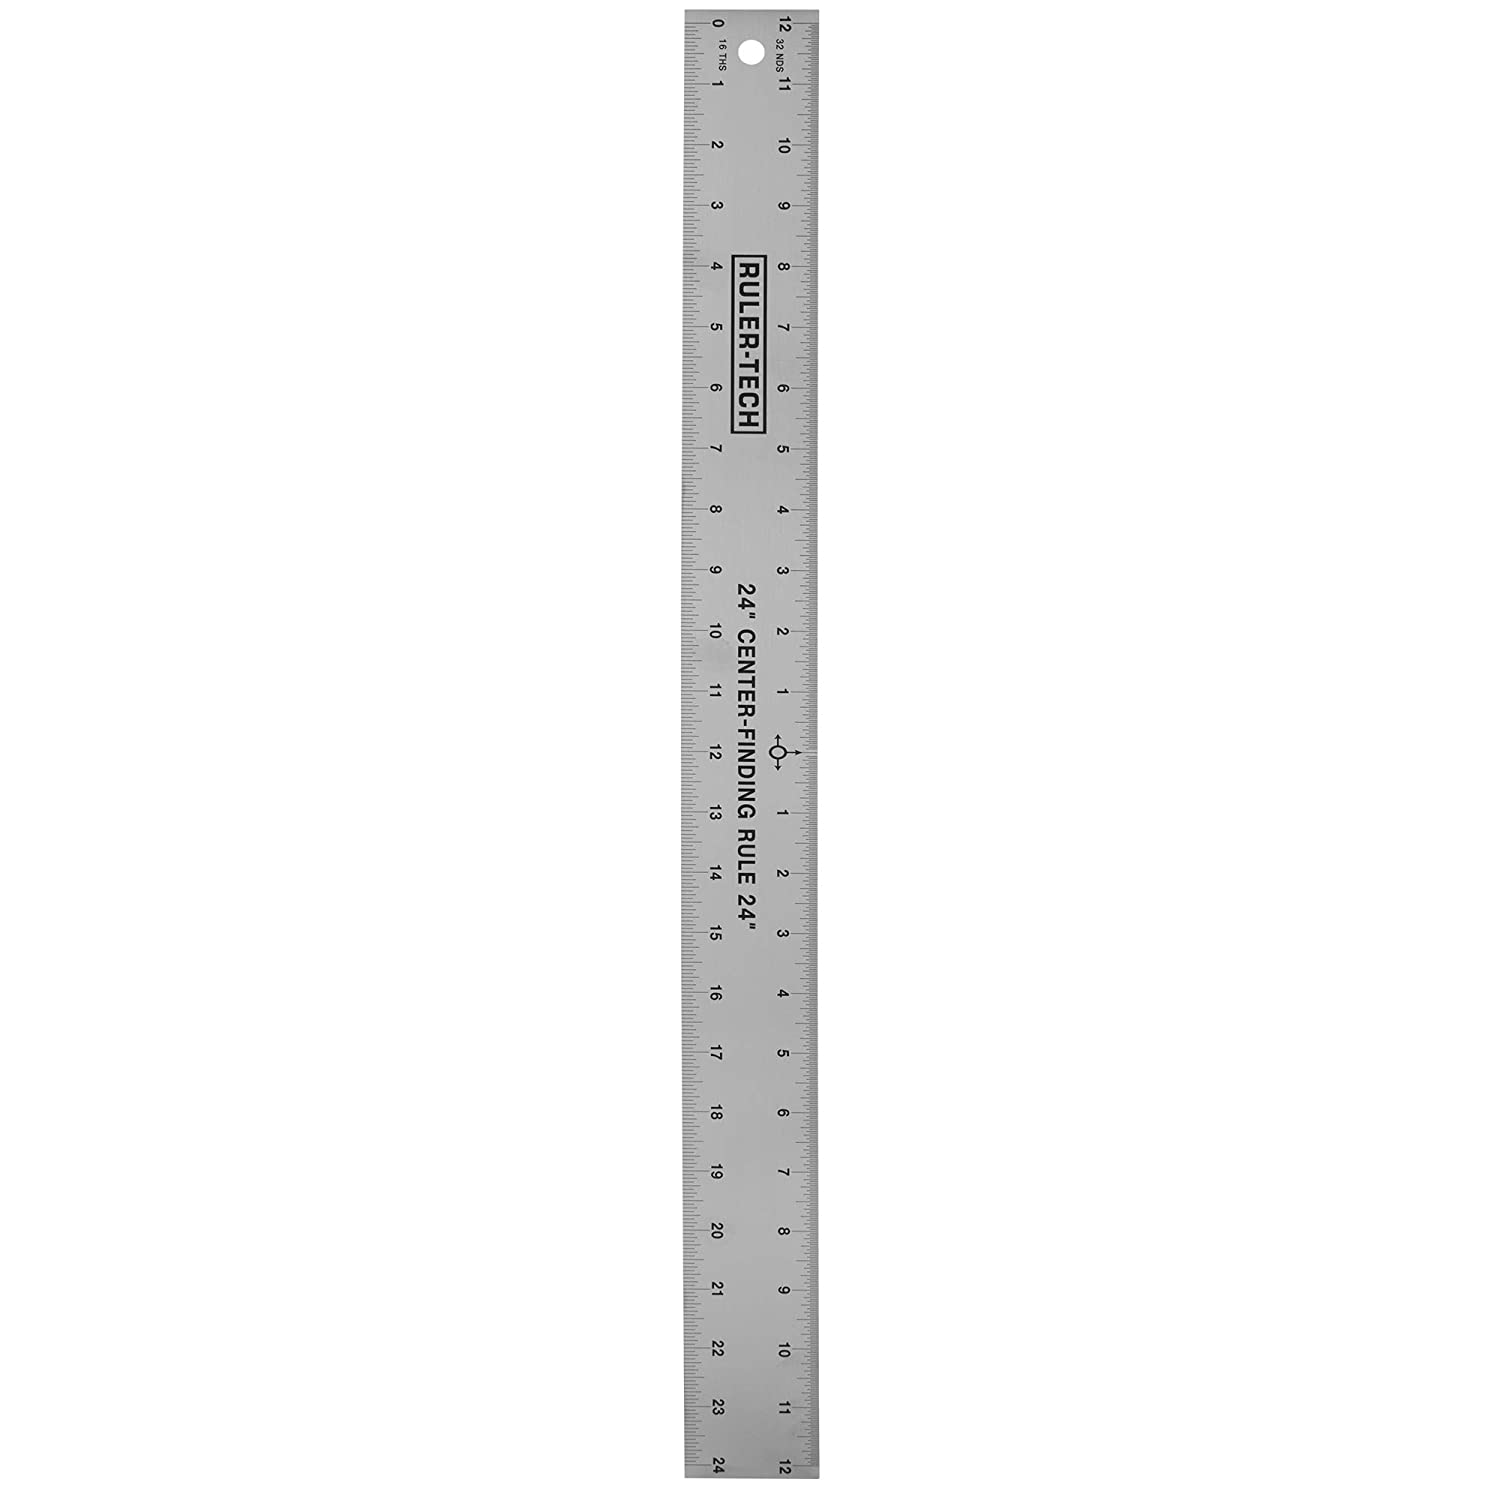 Stainless Steel Center Finding Ruler. Ideal for Woodworking Metal Work Construction and Around The Home 24 Ruler